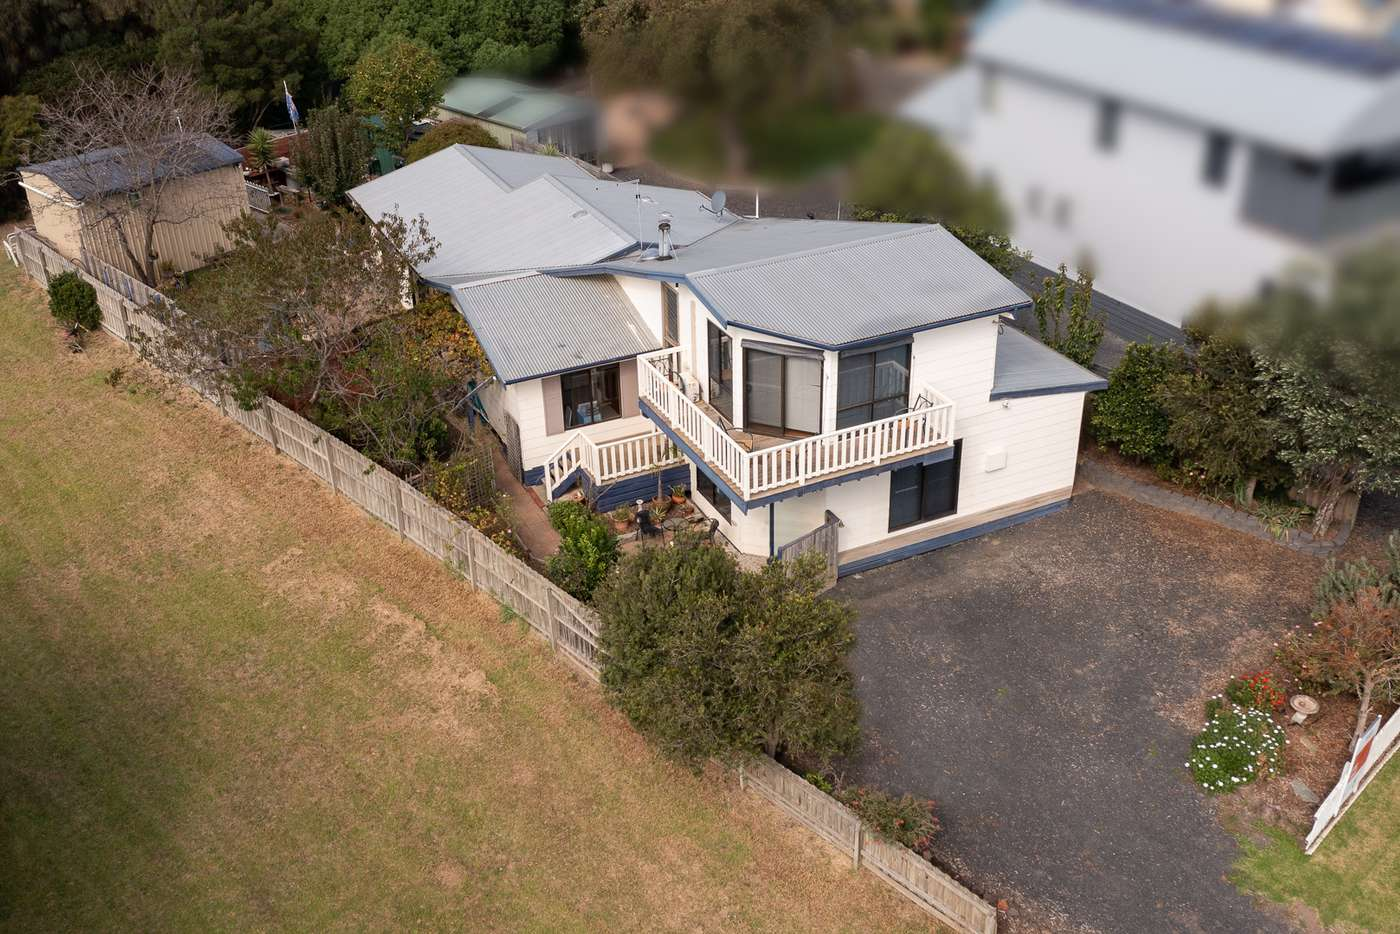 Main view of Homely house listing, 7 Sedgman Road, Wimbledon Heights VIC 3922